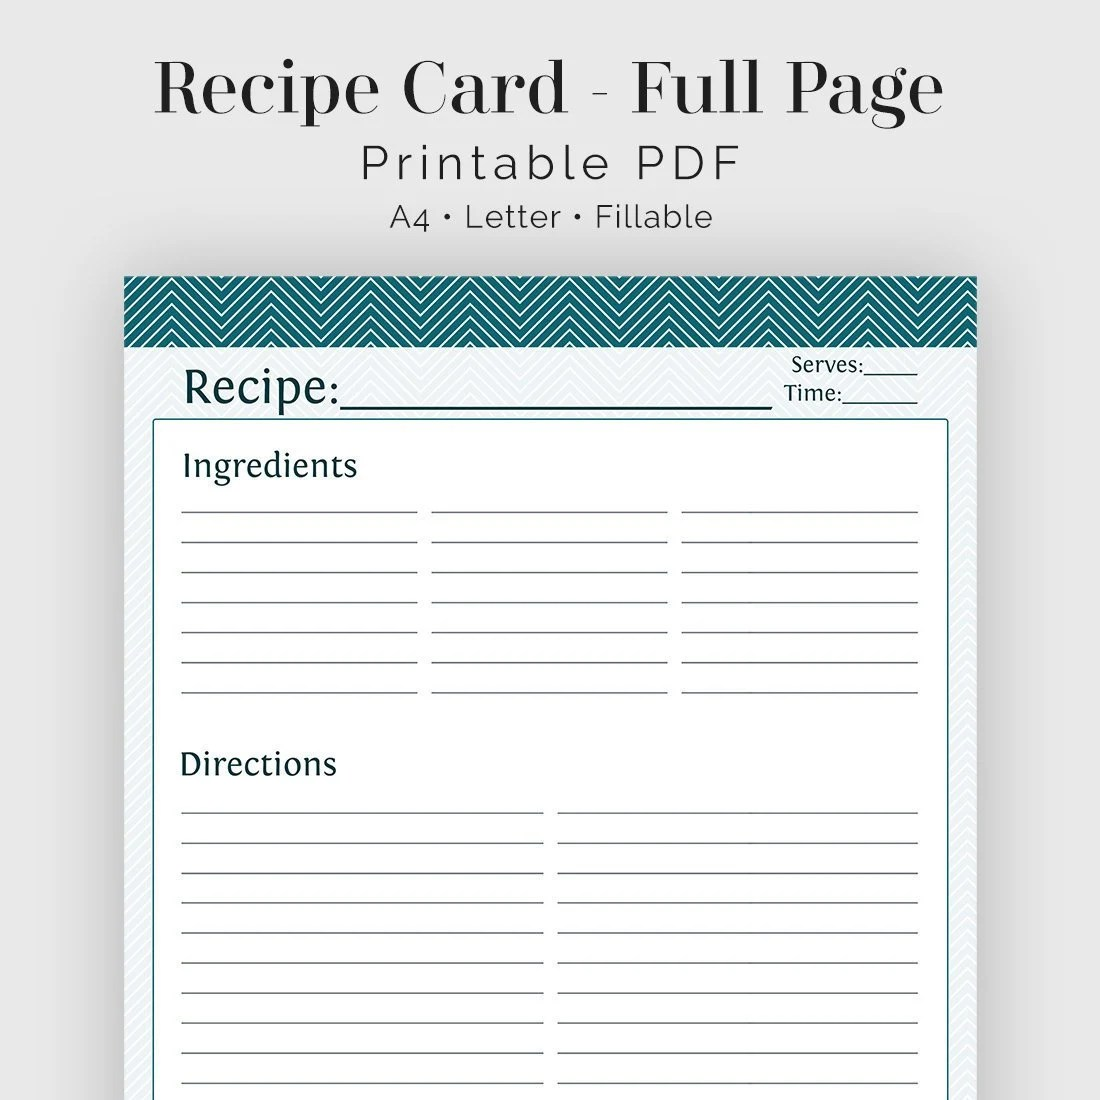 Recipe Card Full Page Fillable Printable PDF Teal Etsy